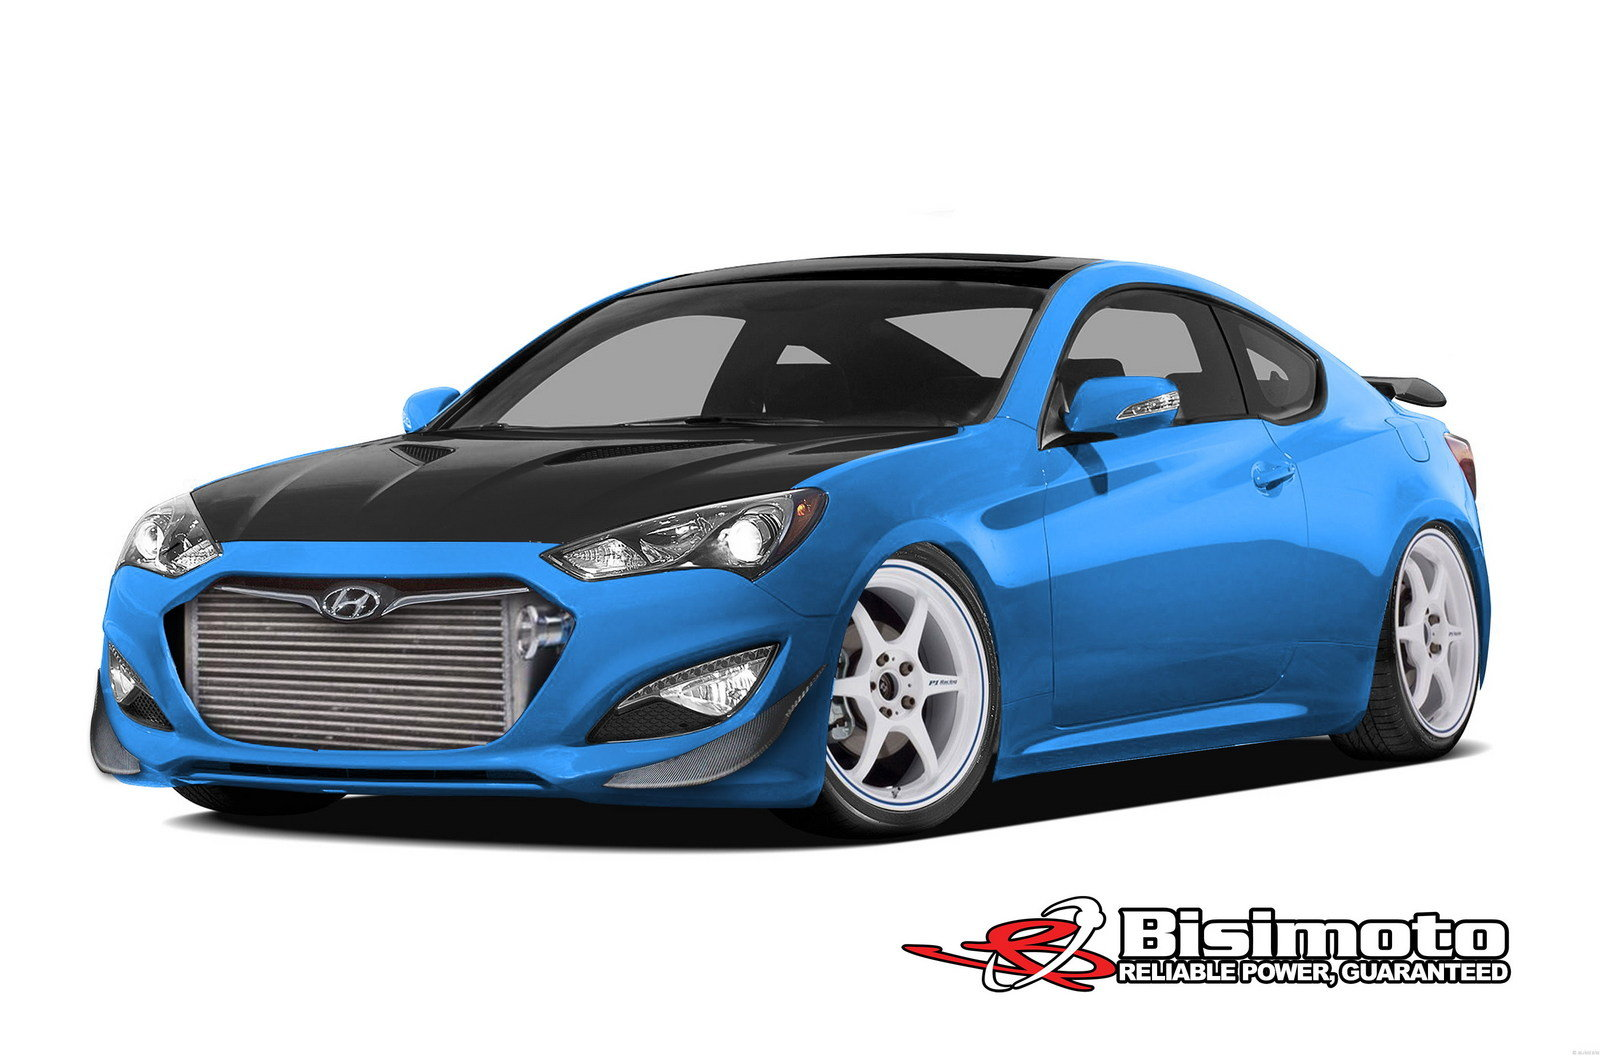 2014 hyundai genesis coupe by bisimoto engineering picture 525413 car review top speed. Black Bedroom Furniture Sets. Home Design Ideas